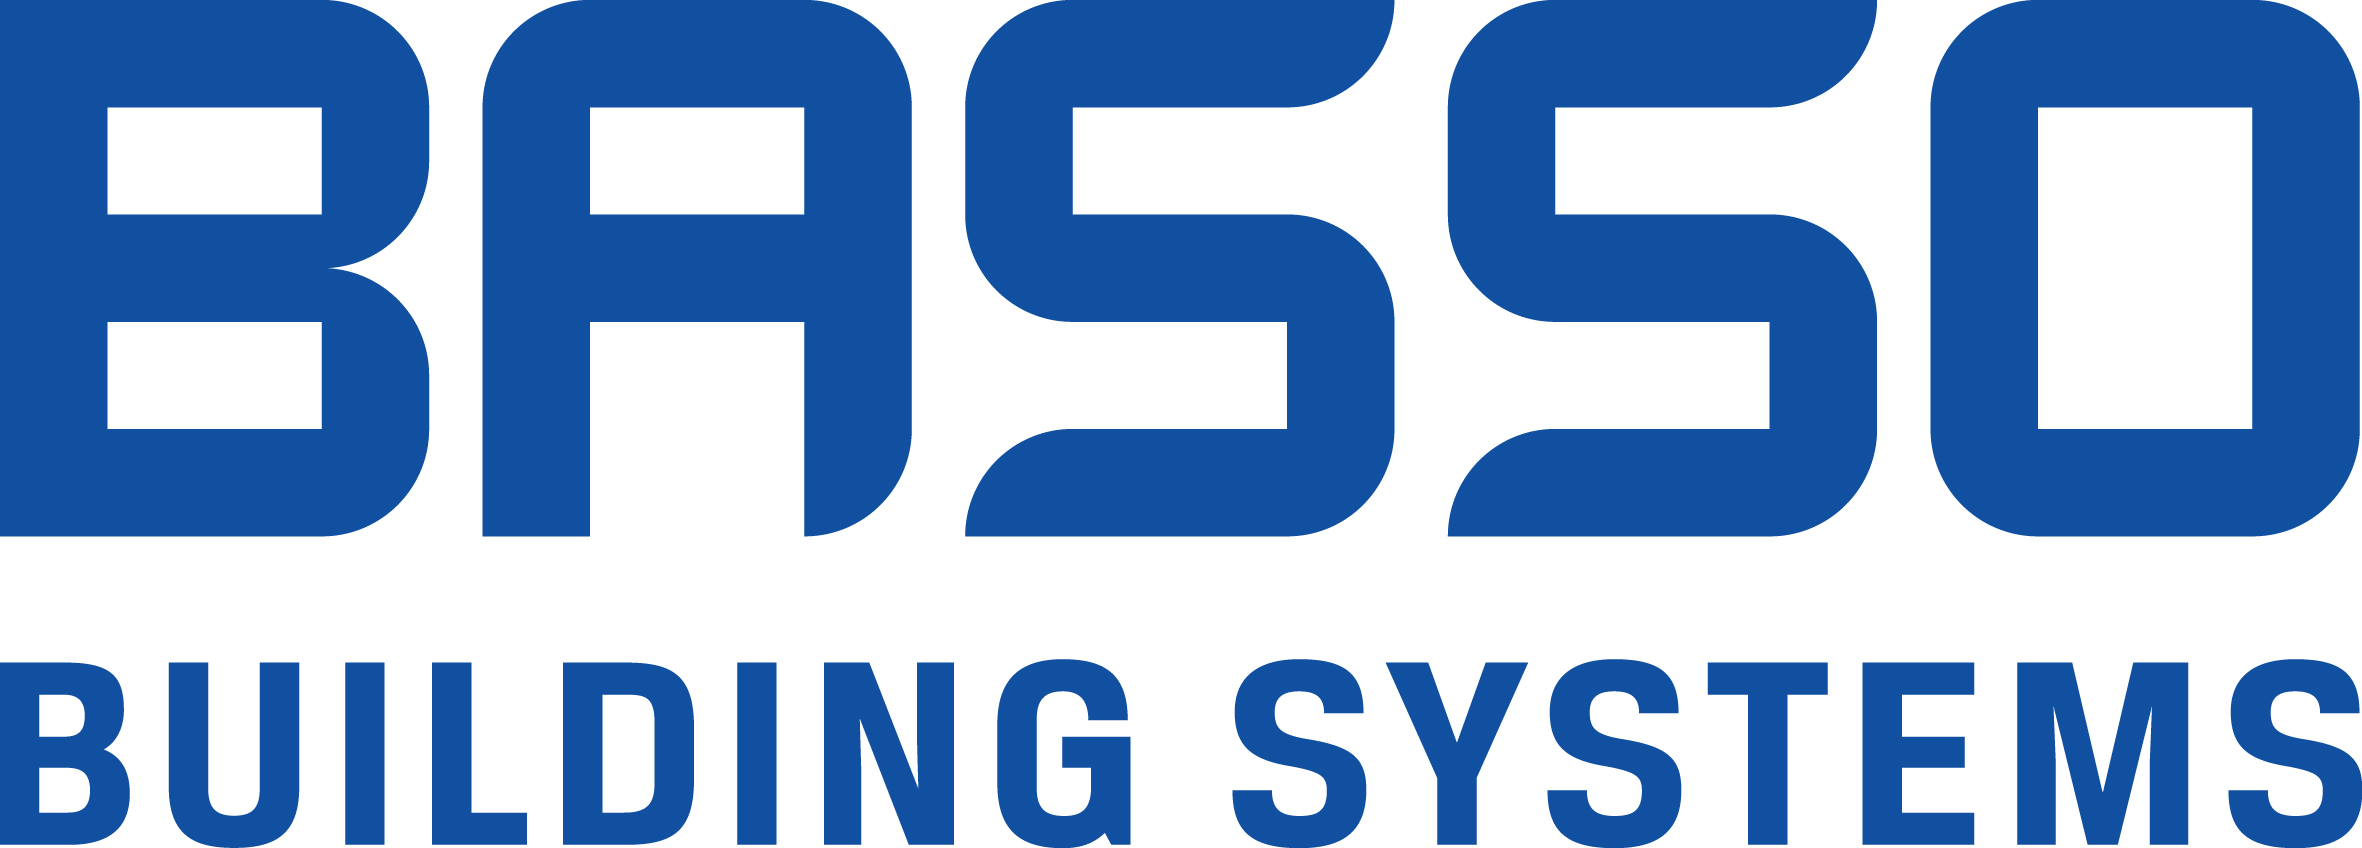 Basso Building Systems Oy